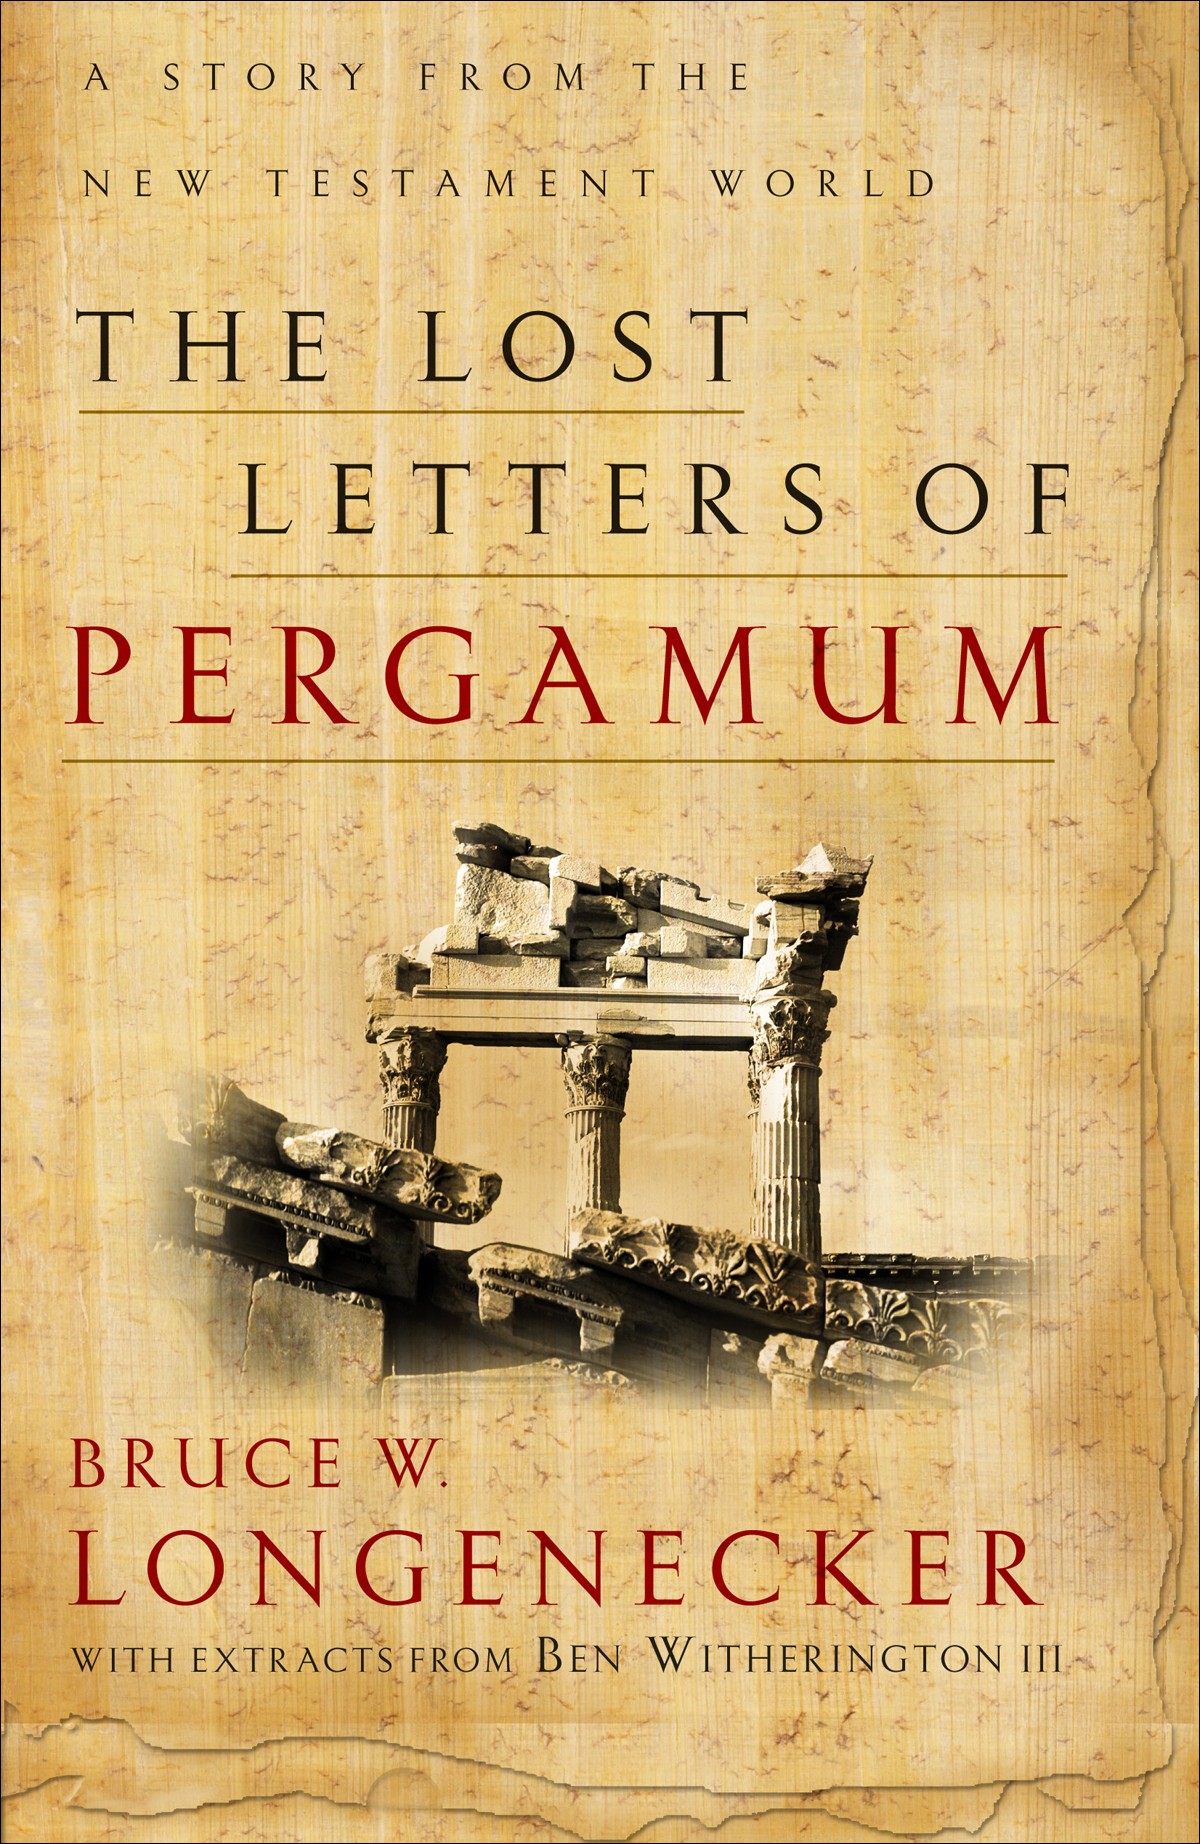 the character lost letters